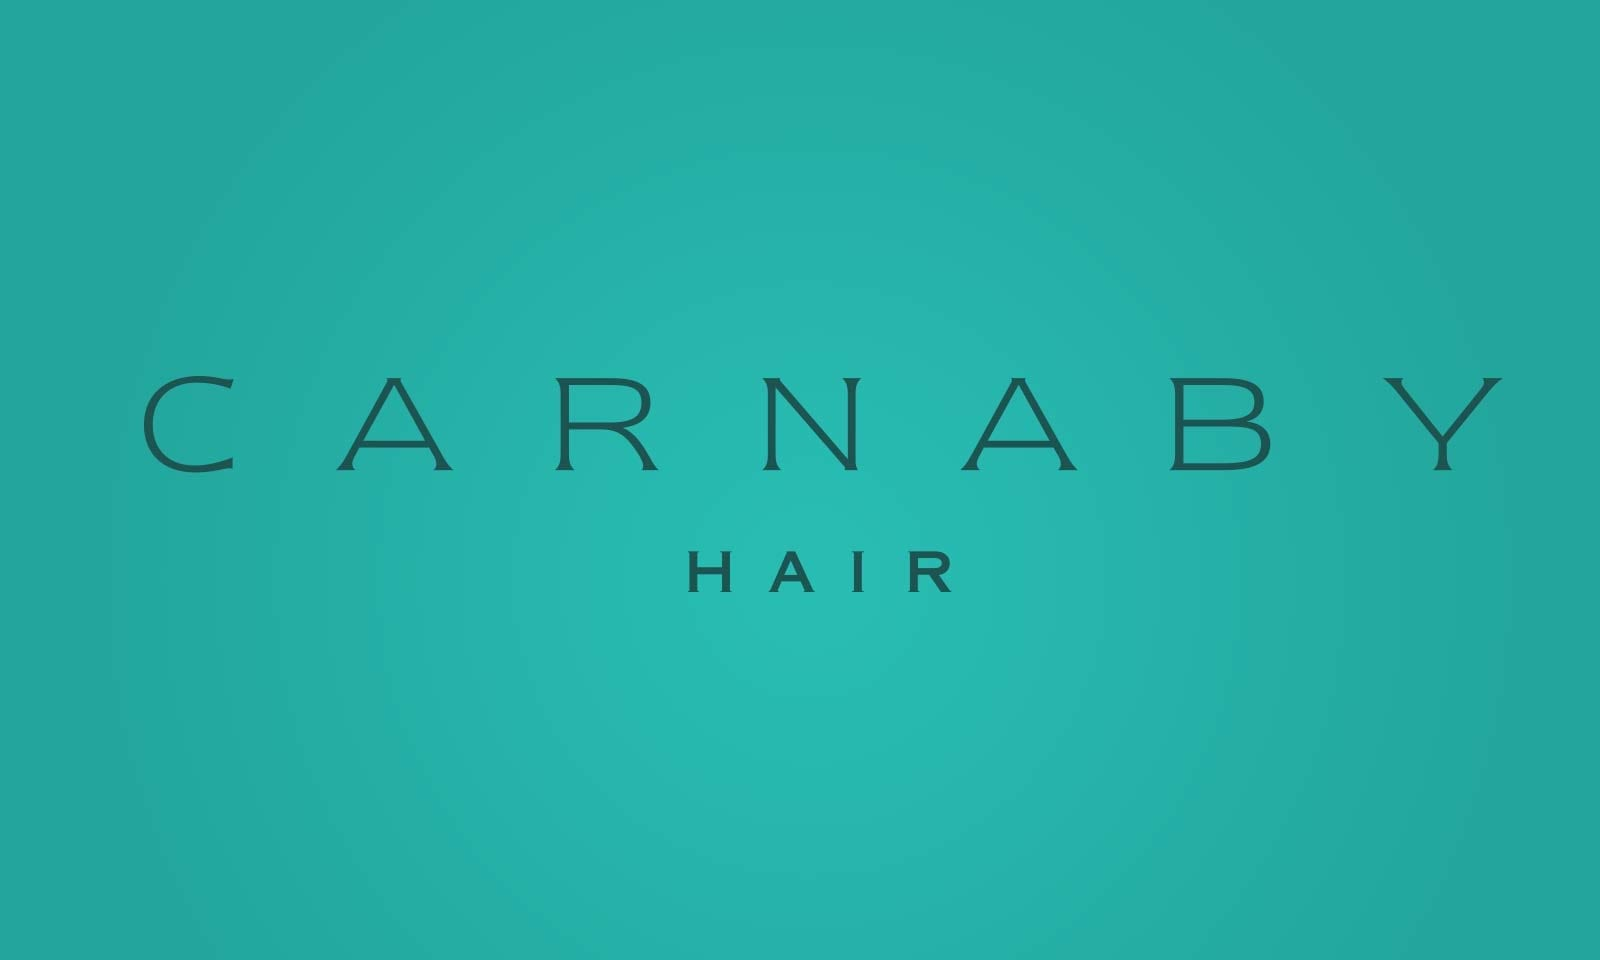 New look and feel for company sydney, Carnaby Hair masterbrand.